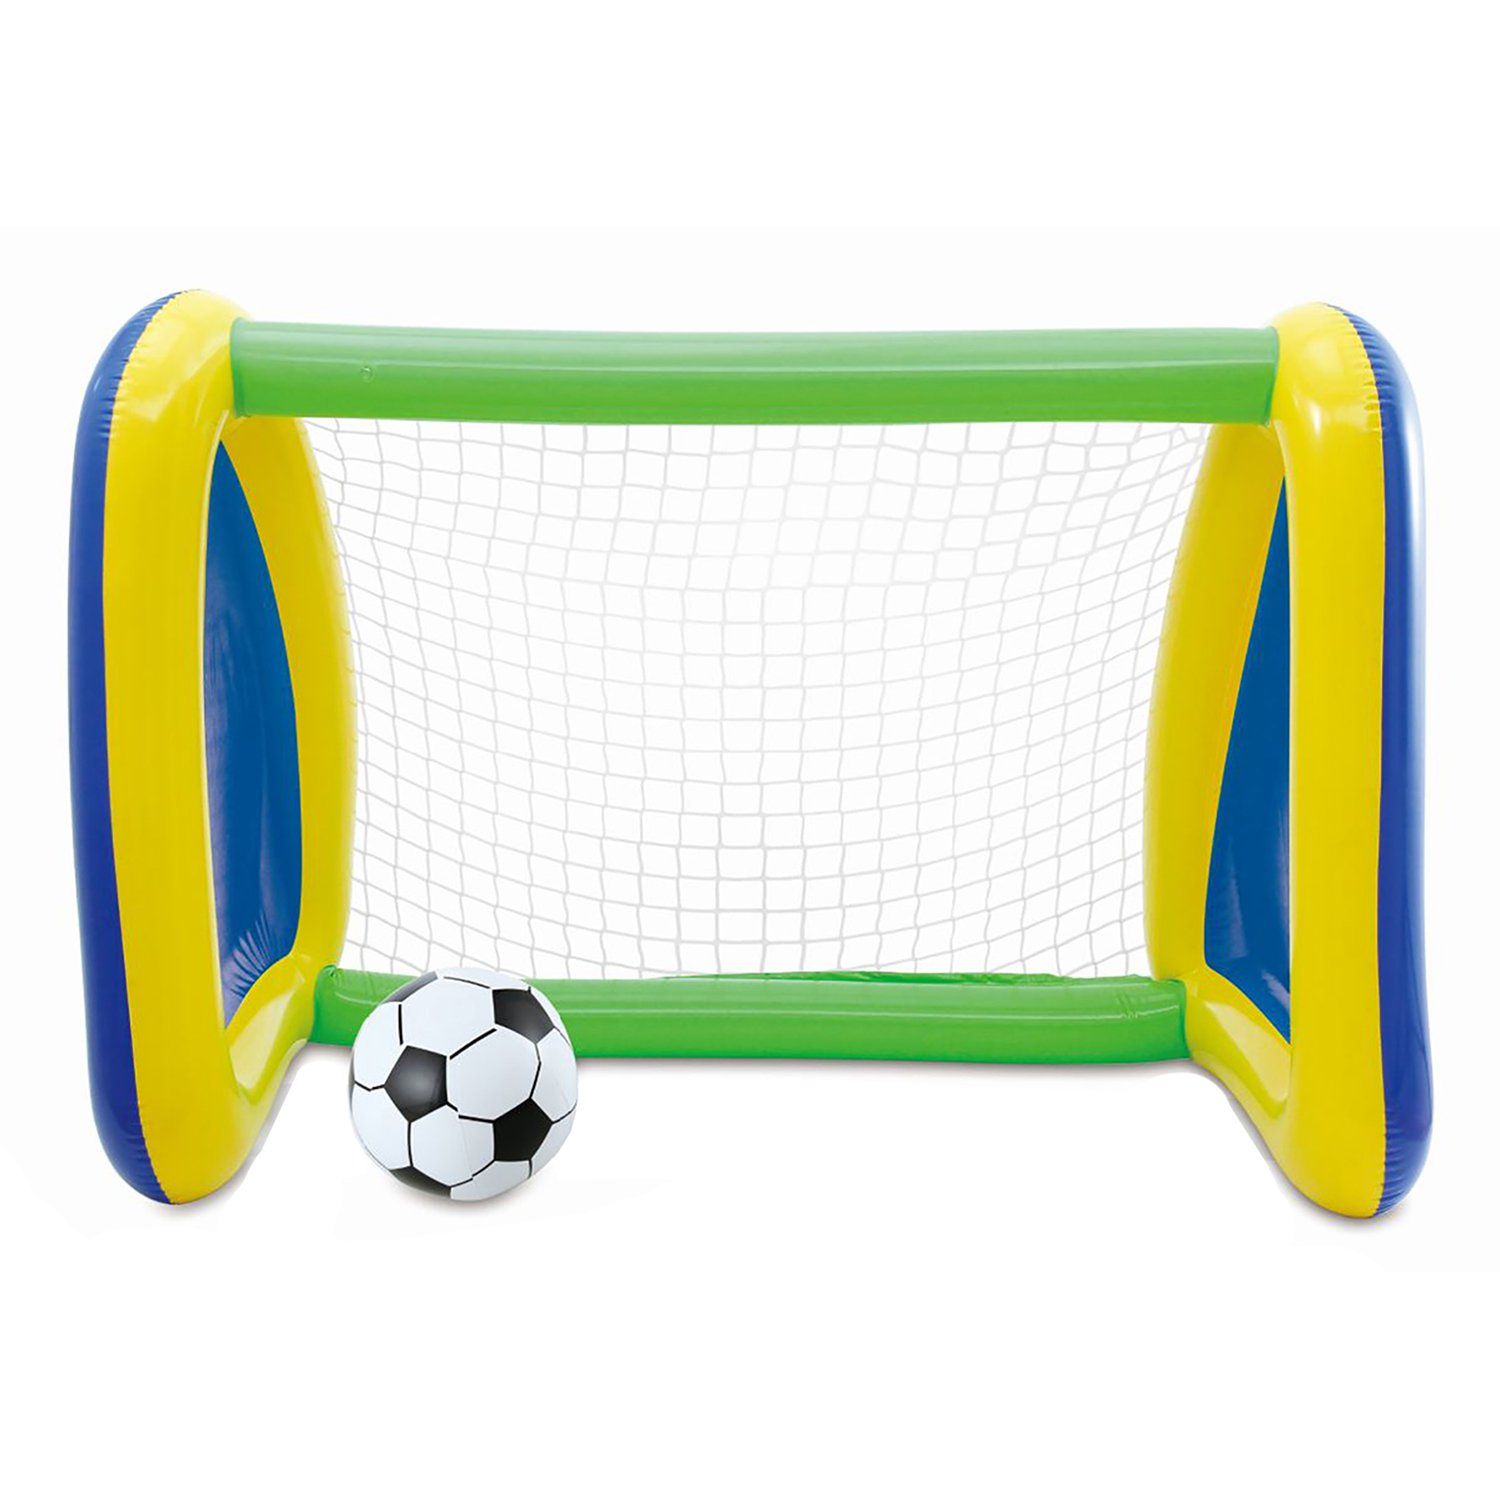 Big Play Sports Jumbo Inflatable Swimming Pool Goal and Ball Soccer Sports Set by Summer Waves